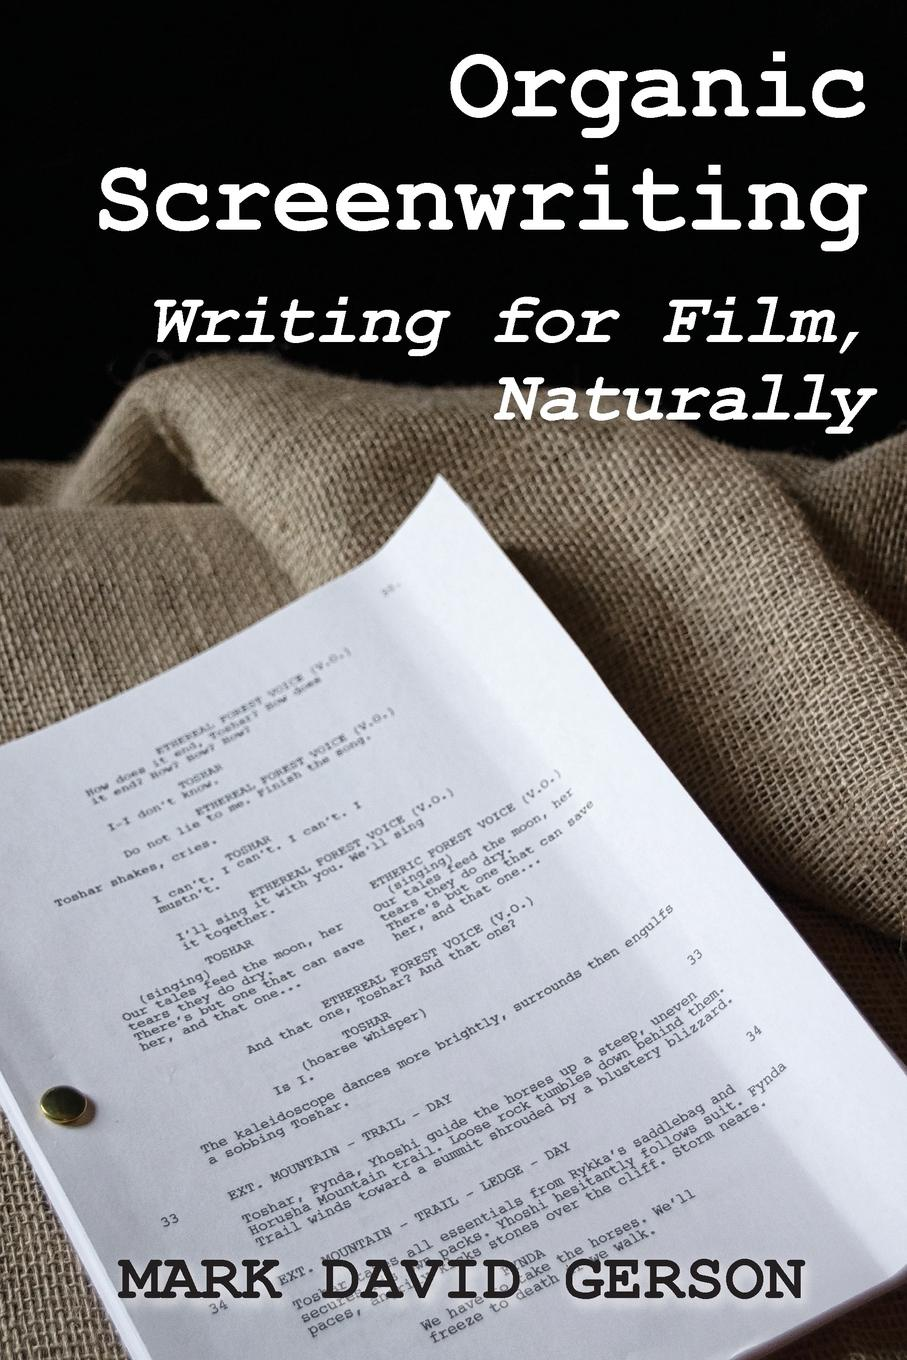 Mark David Gerson. Organic Screenwriting. Writing for Film, Naturally